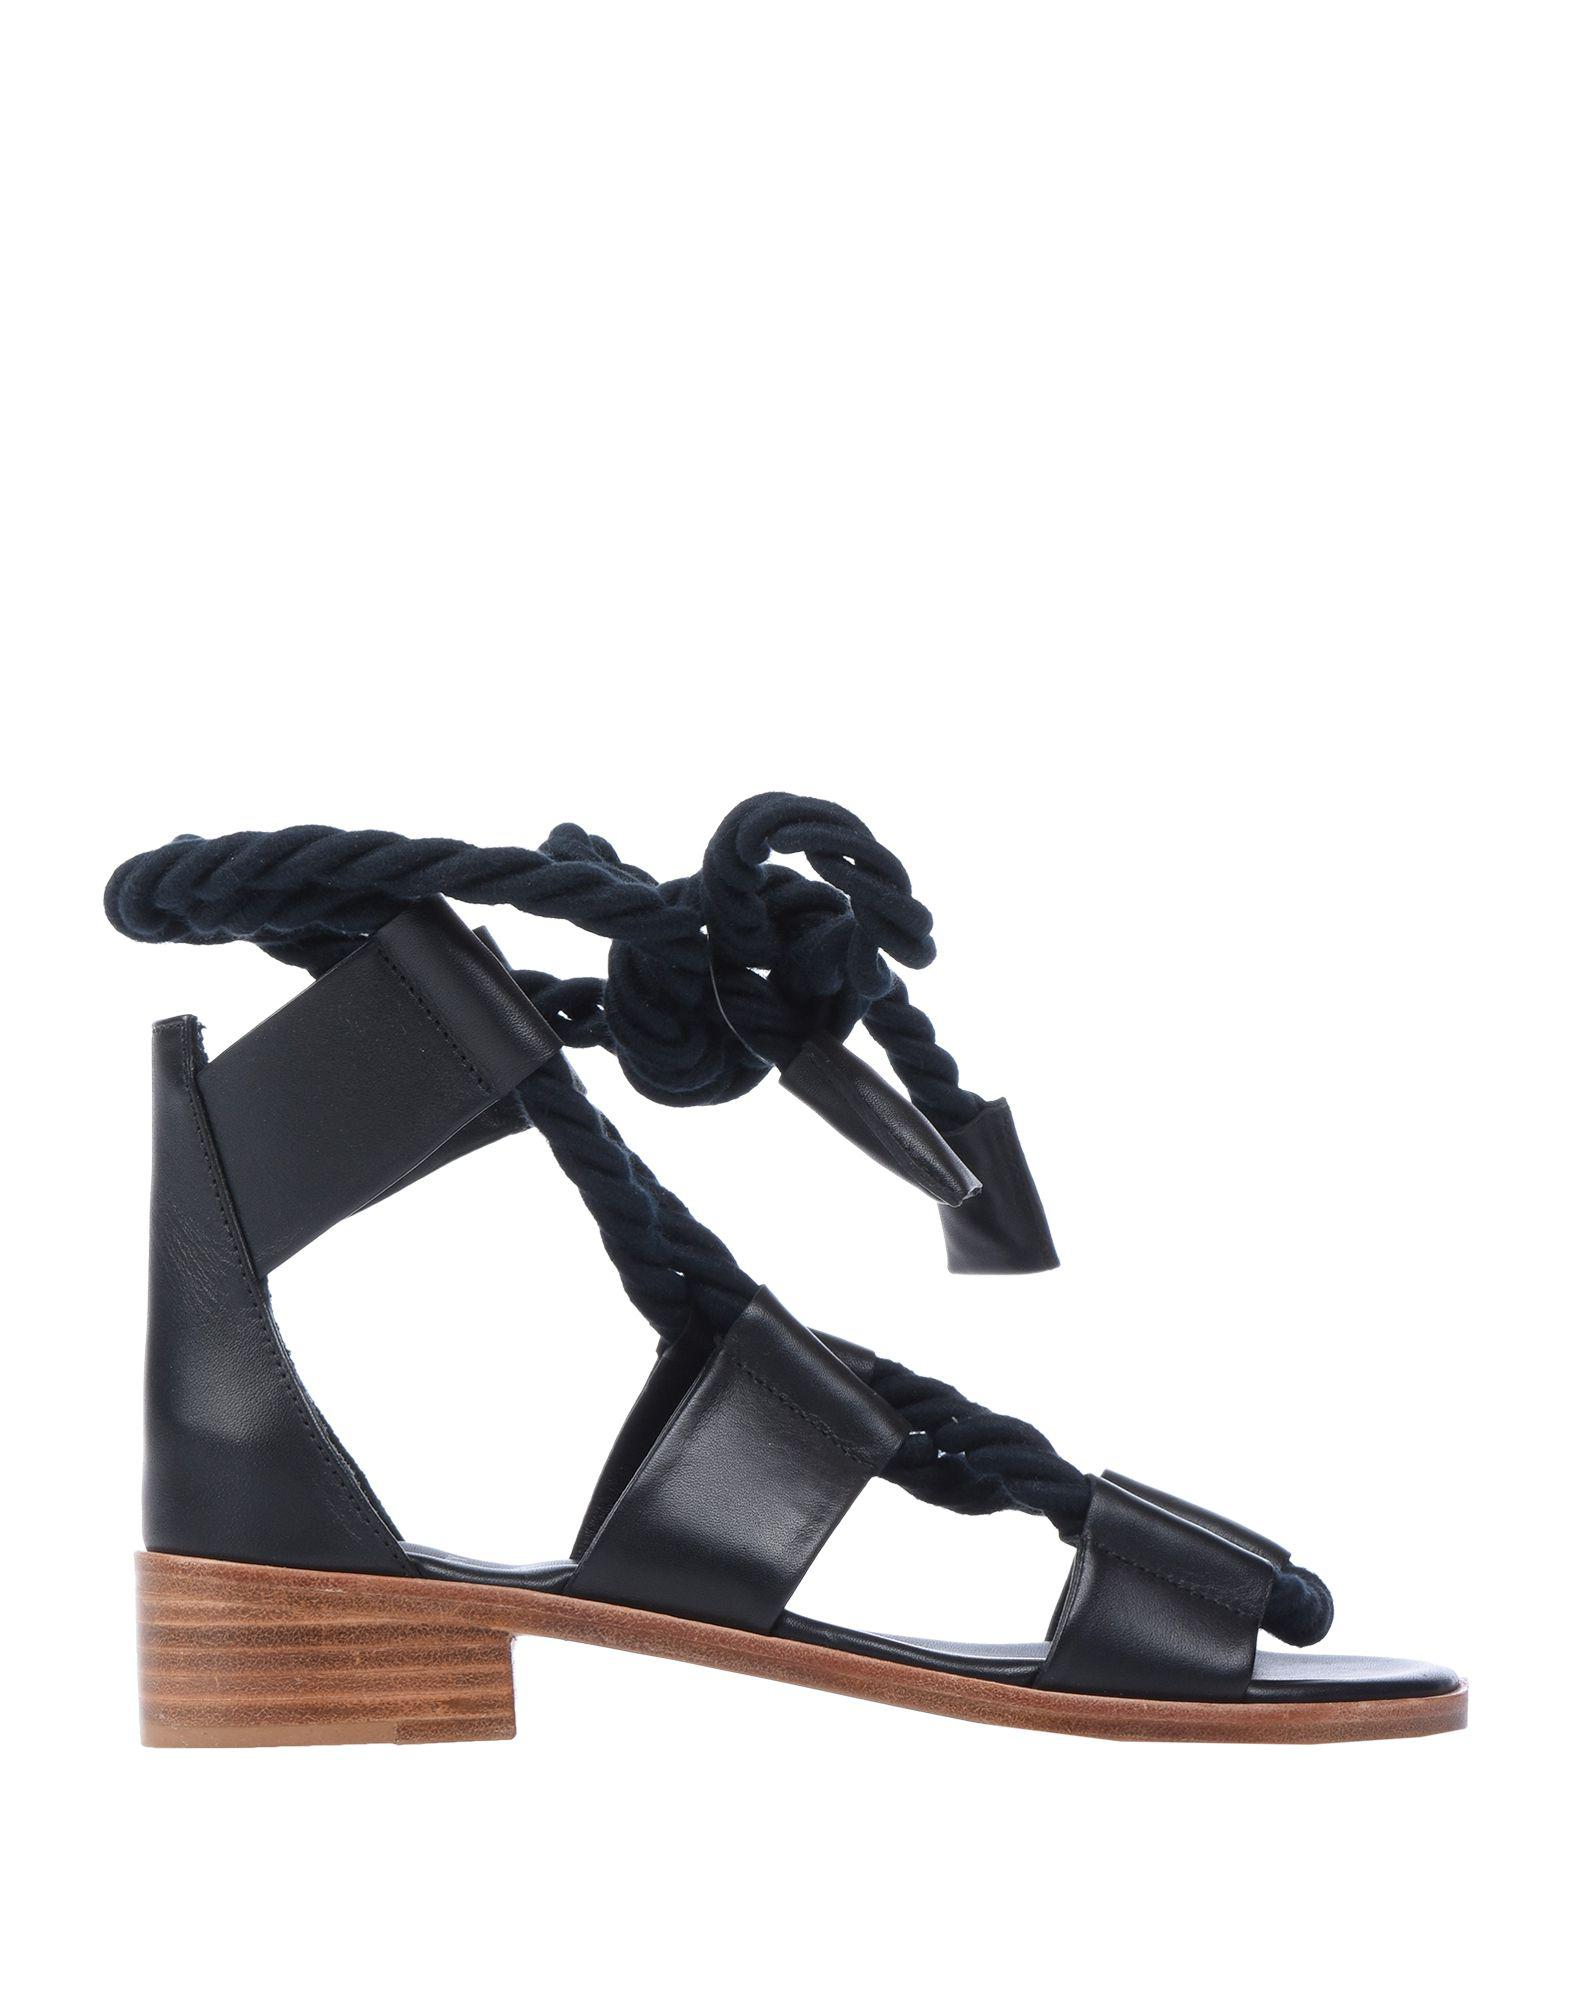 0ee1e2462e8988 Lyst - Pierre Hardy Sandals in Black